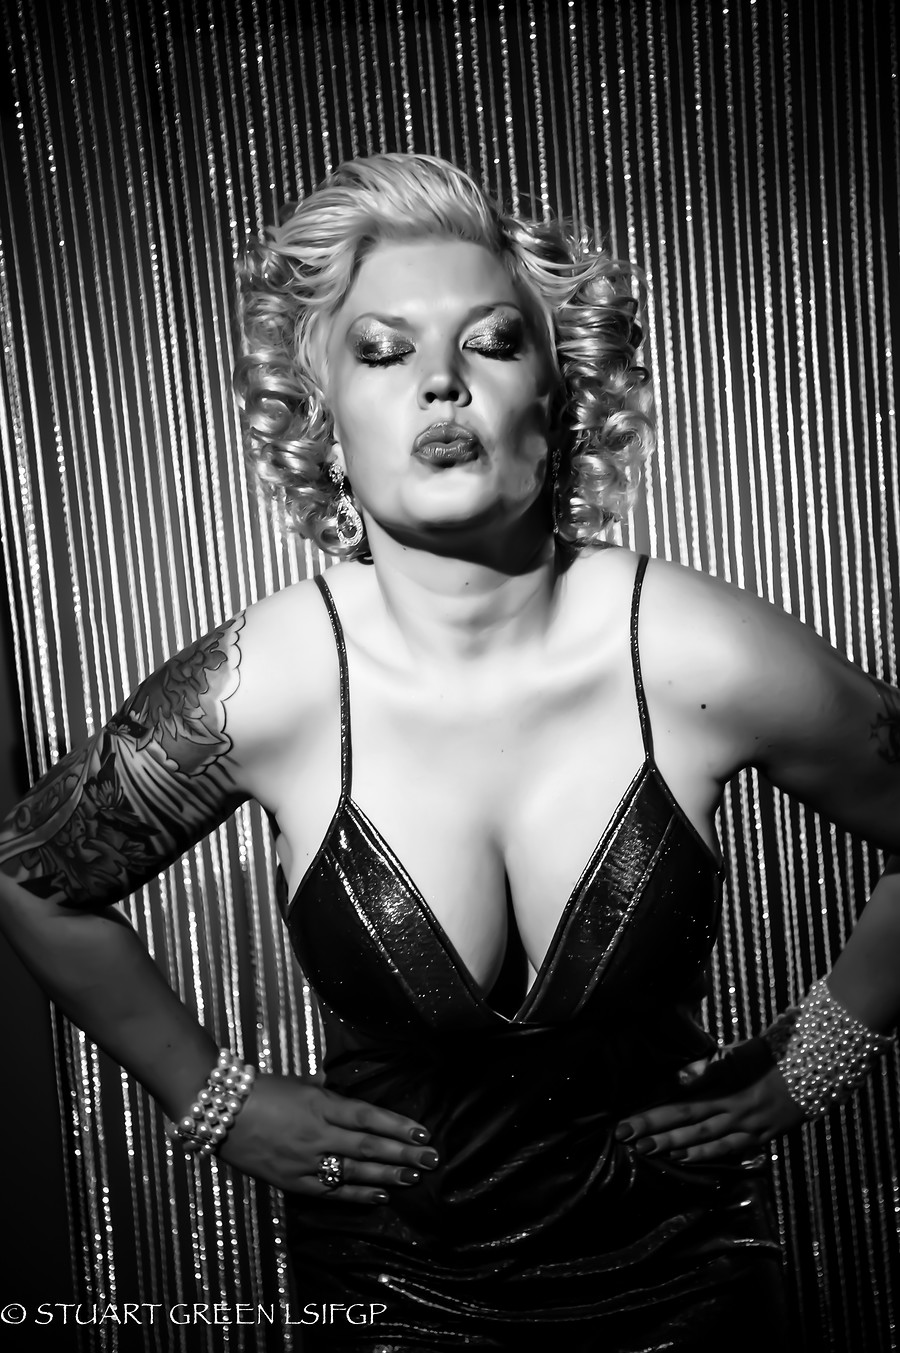 marilyn monroe style shoot / Photography by Stuart Green-Photography, Model Lelly D / Uploaded 9th July 2014 @ 08:24 PM